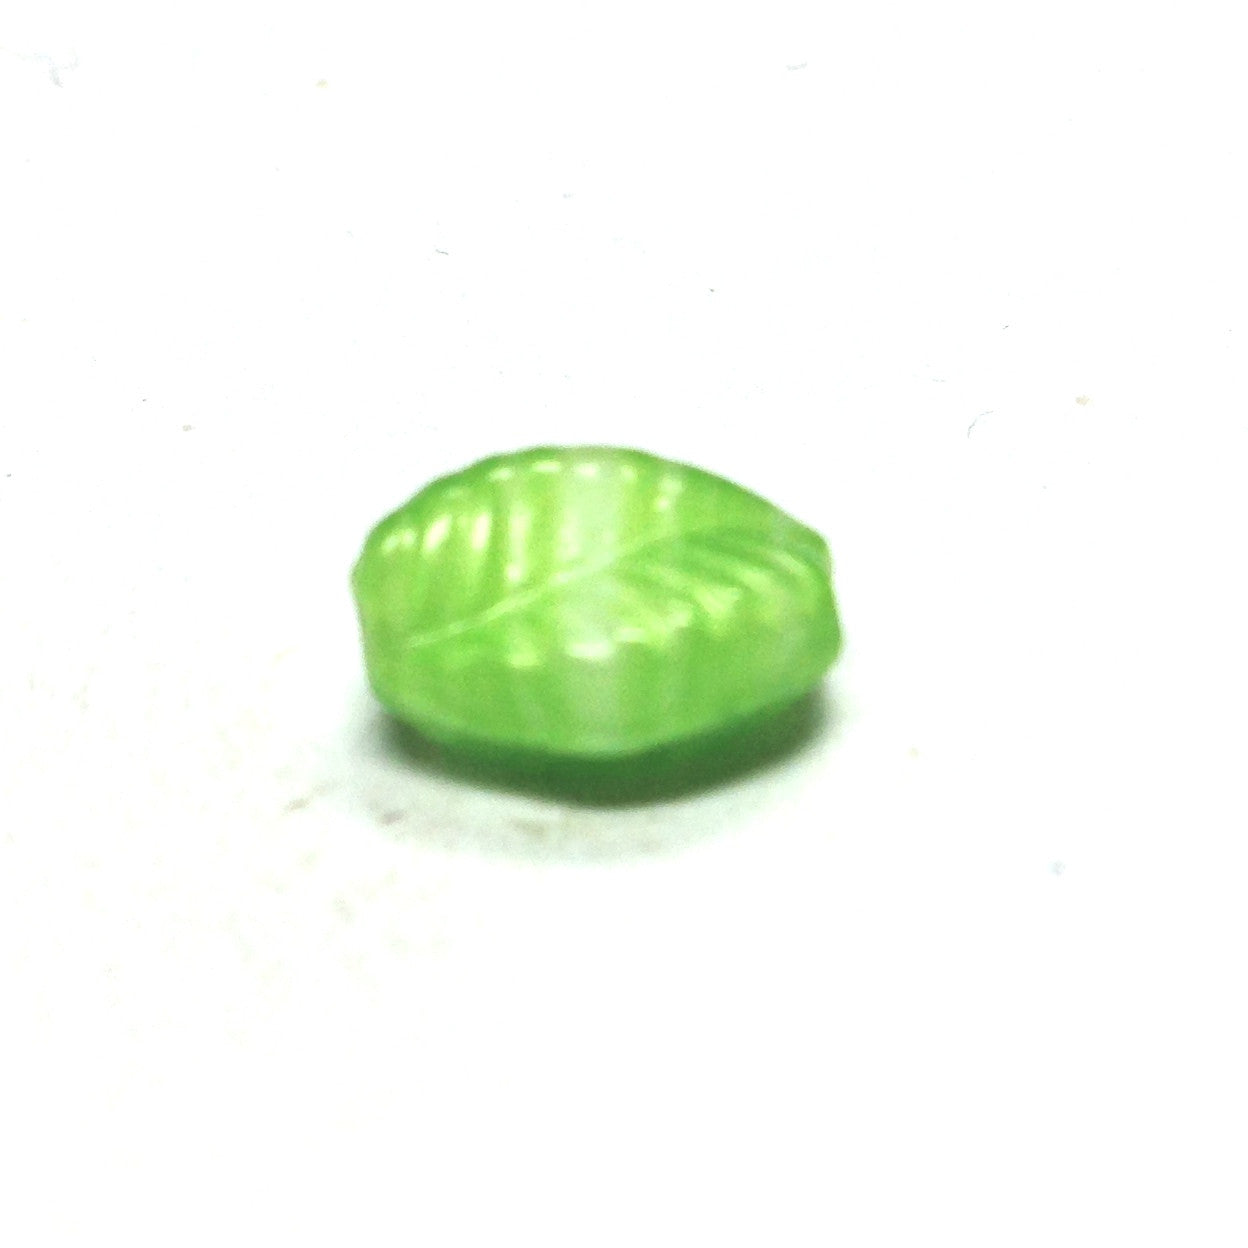 10X7MM Green Glass Leaf Bead (72 pieces)